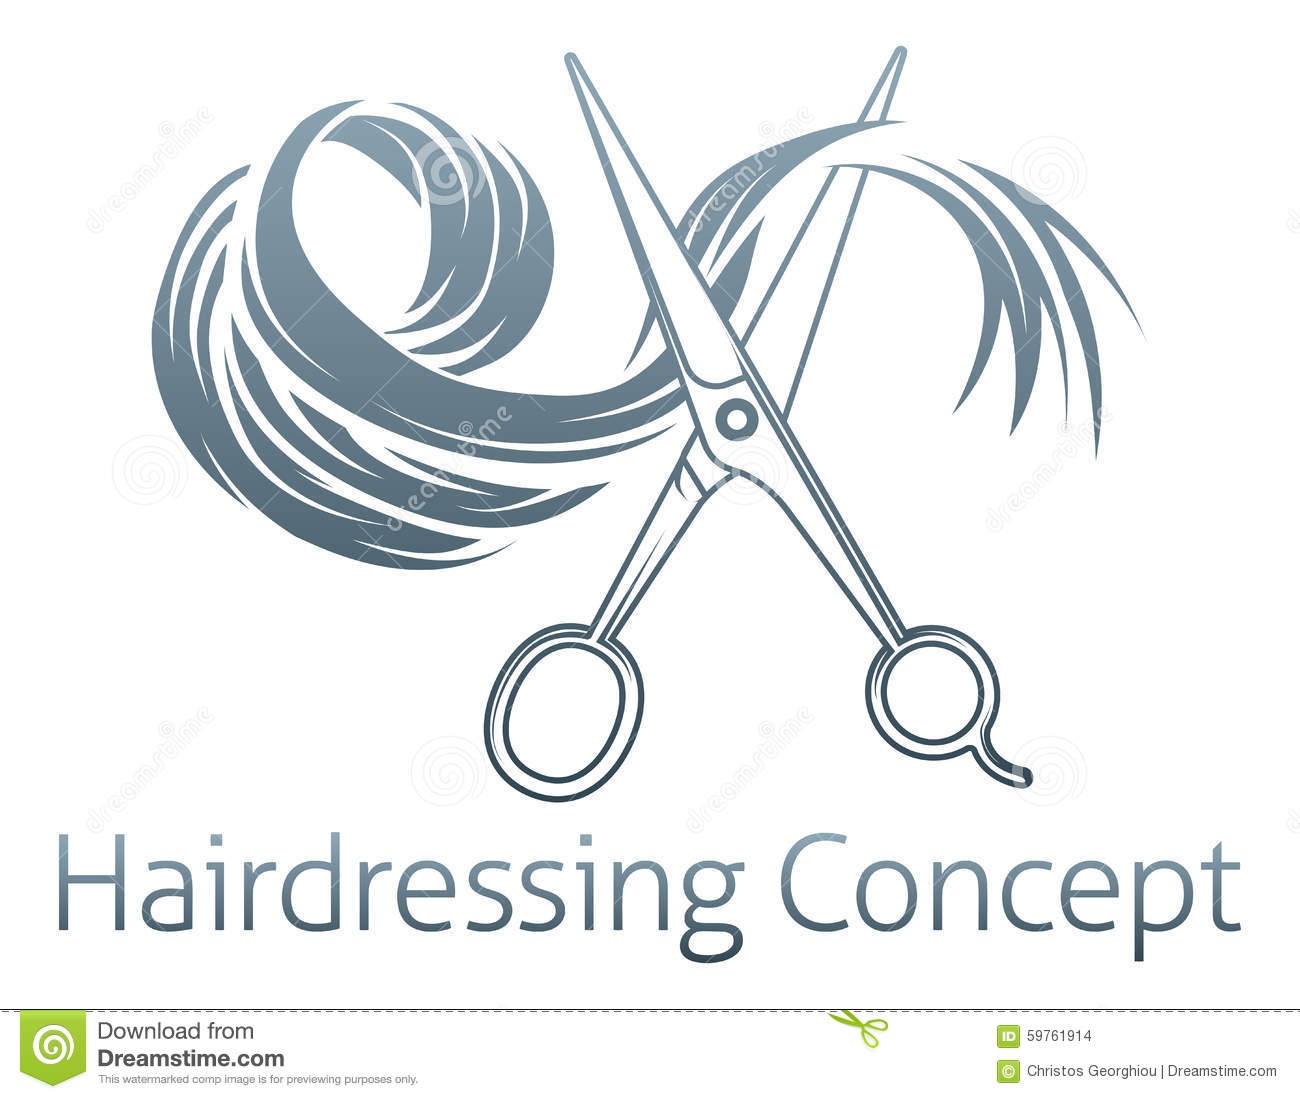 Hairdressing Concept Stock Vector Image 59761914